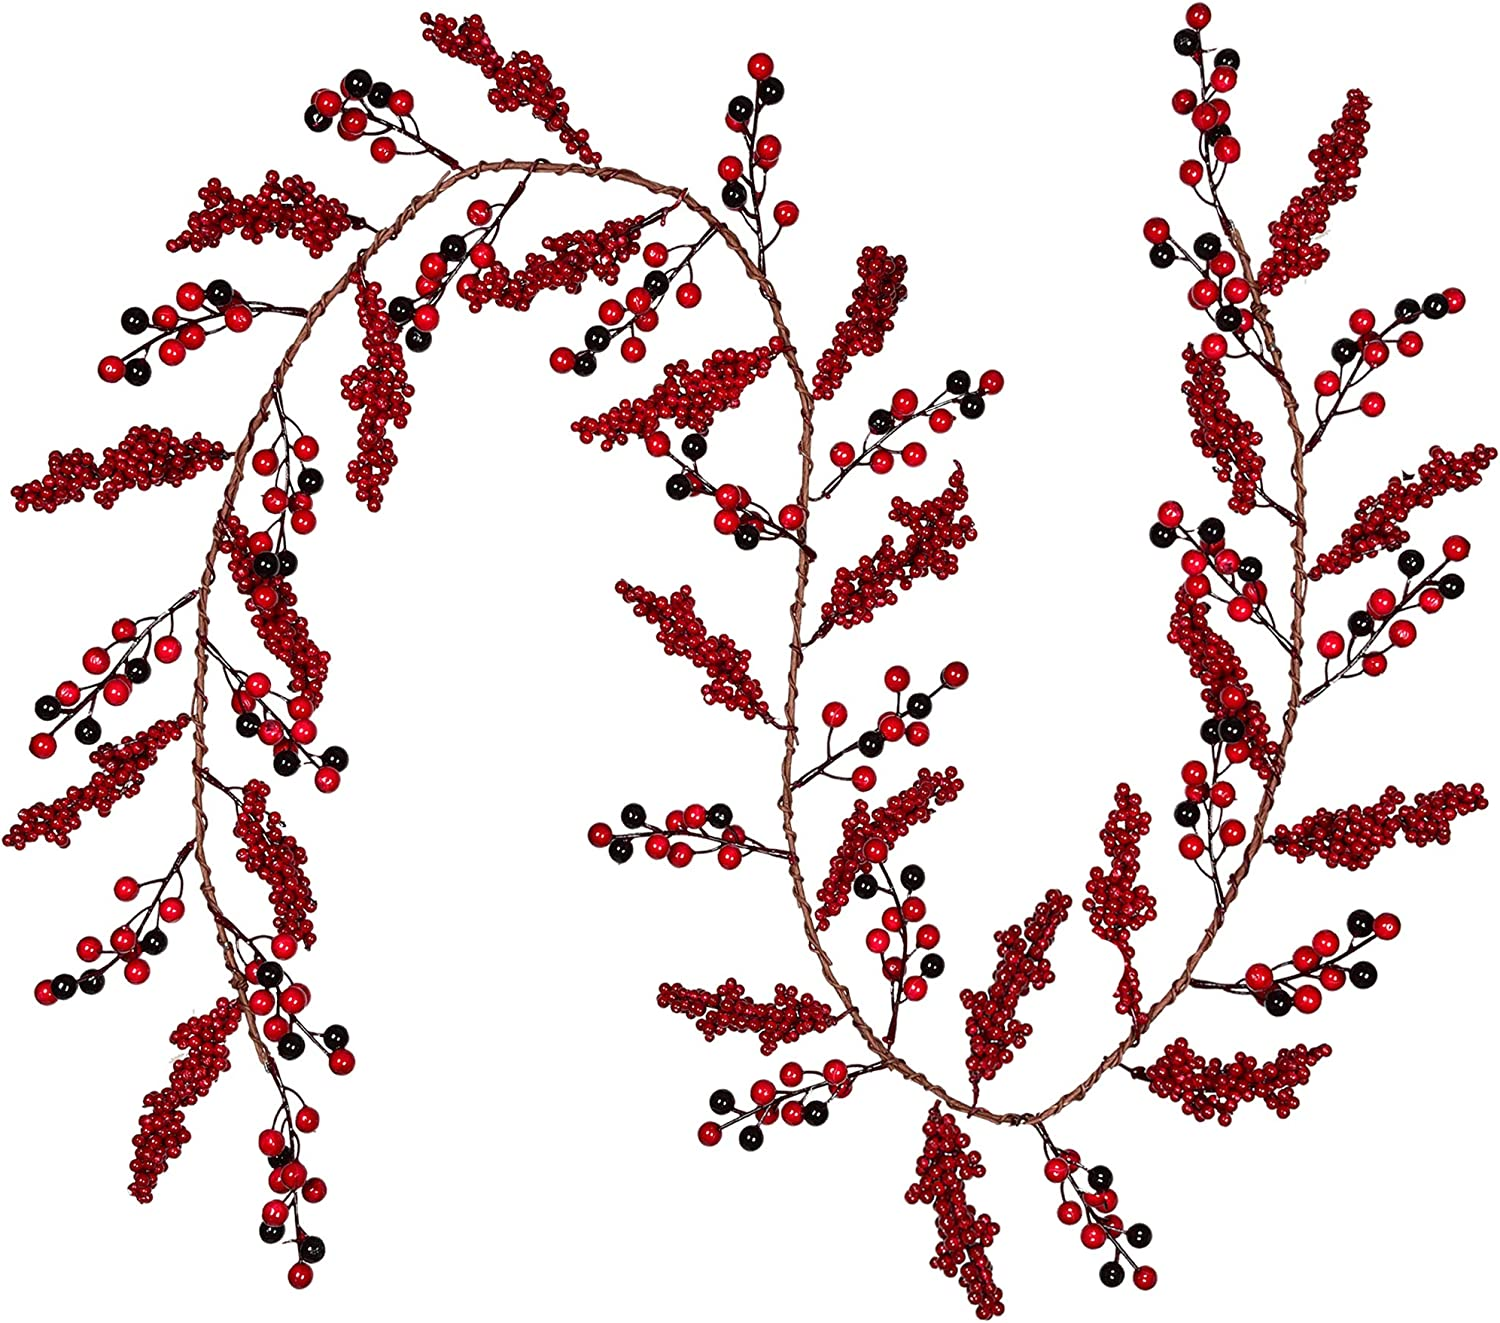 DearHouse 6Ft Red Berry Christmas Garland, Berry Twig Garland Wired Stems with Bulk Assorted Large Berries and Berry Clusters Rustic Artificial Hanging Garland String for Holiday Winter New Year Decor